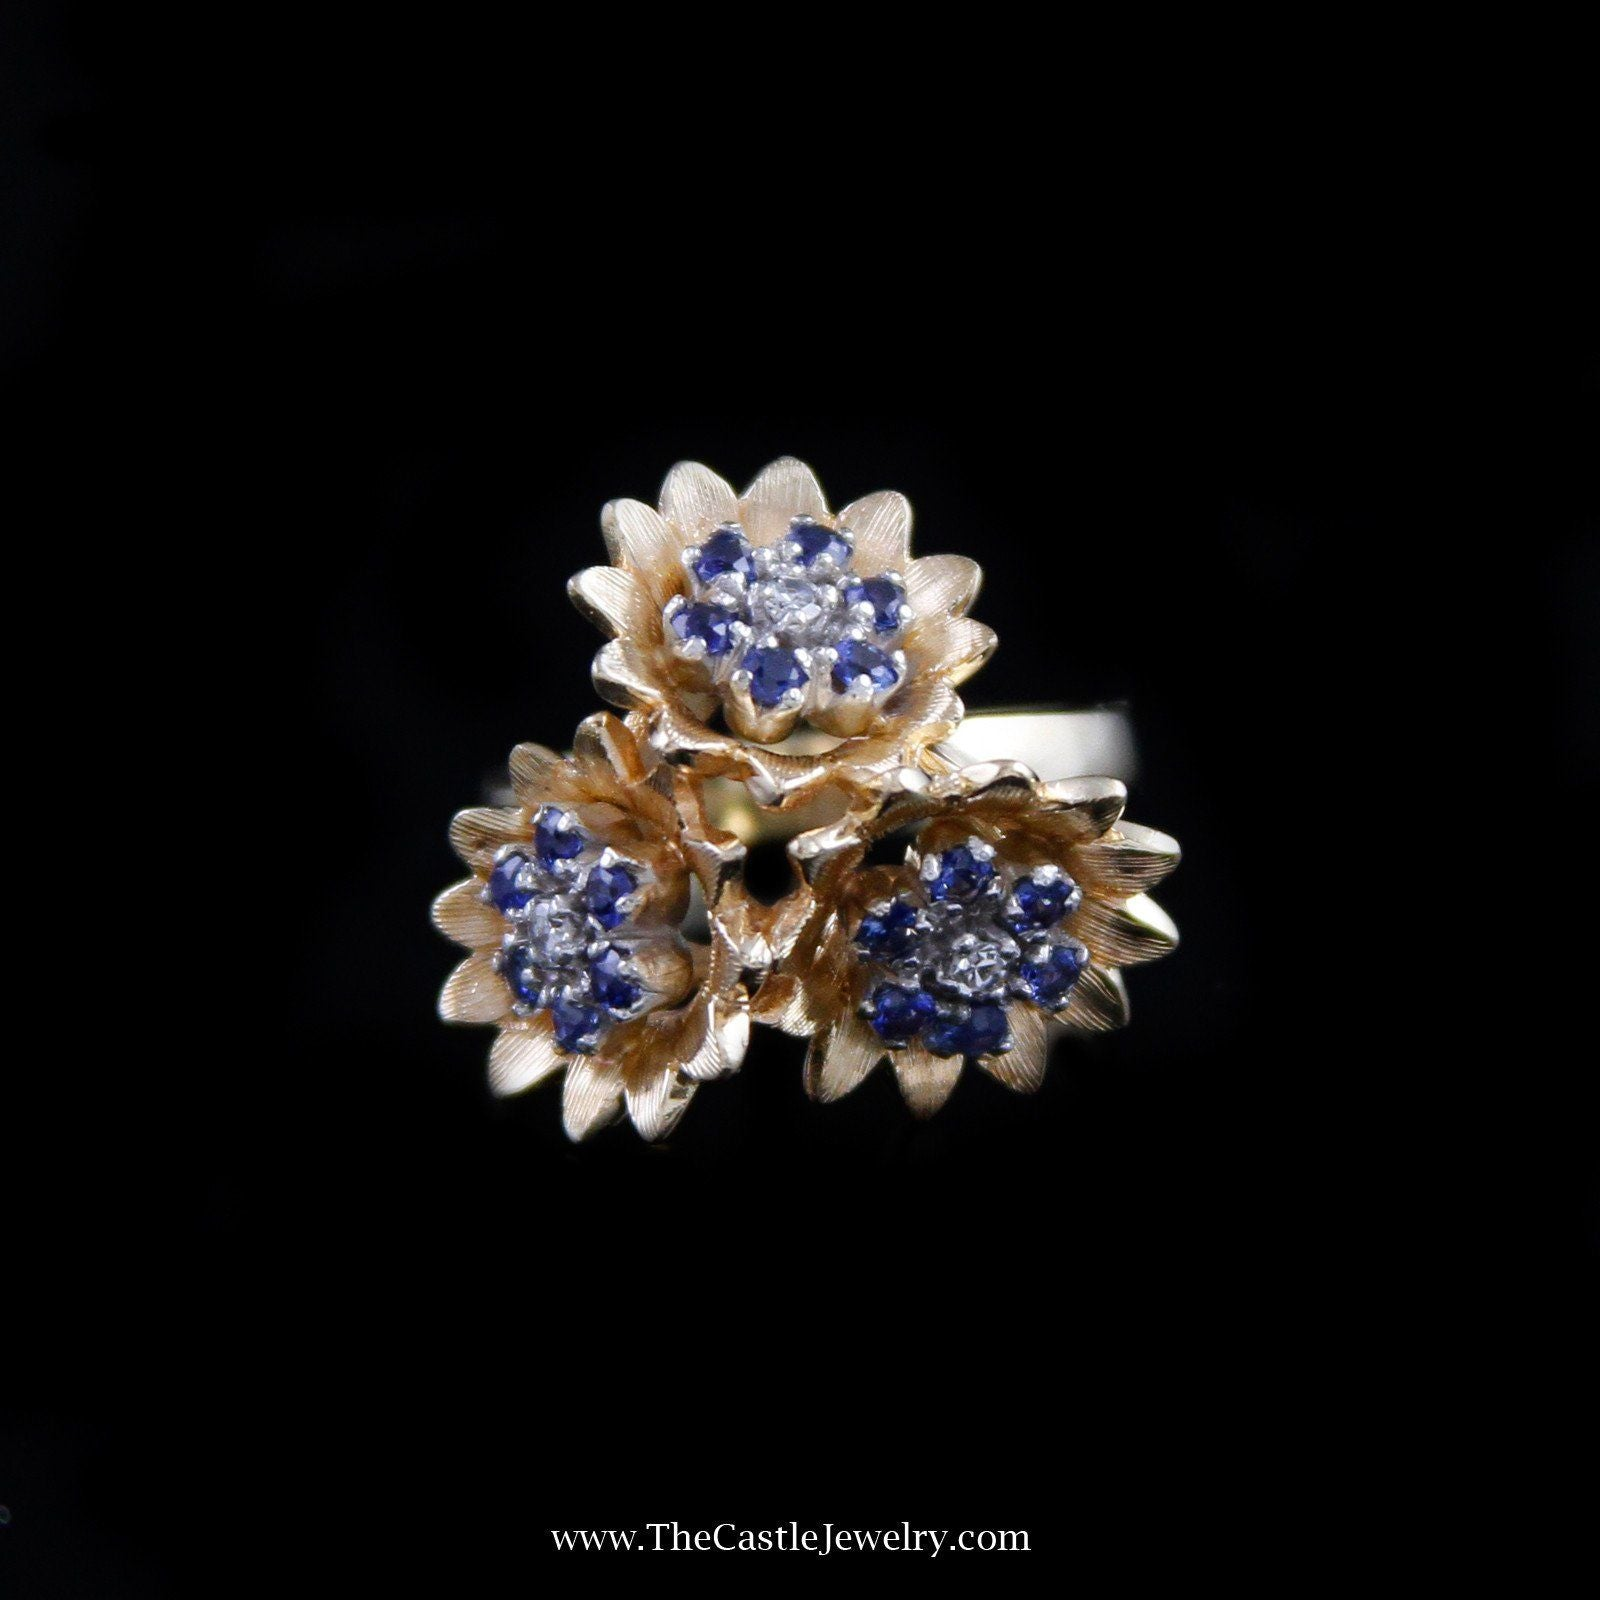 Charming Triple Flower Sapphire Cluster Ring in 14K Yellow Gold